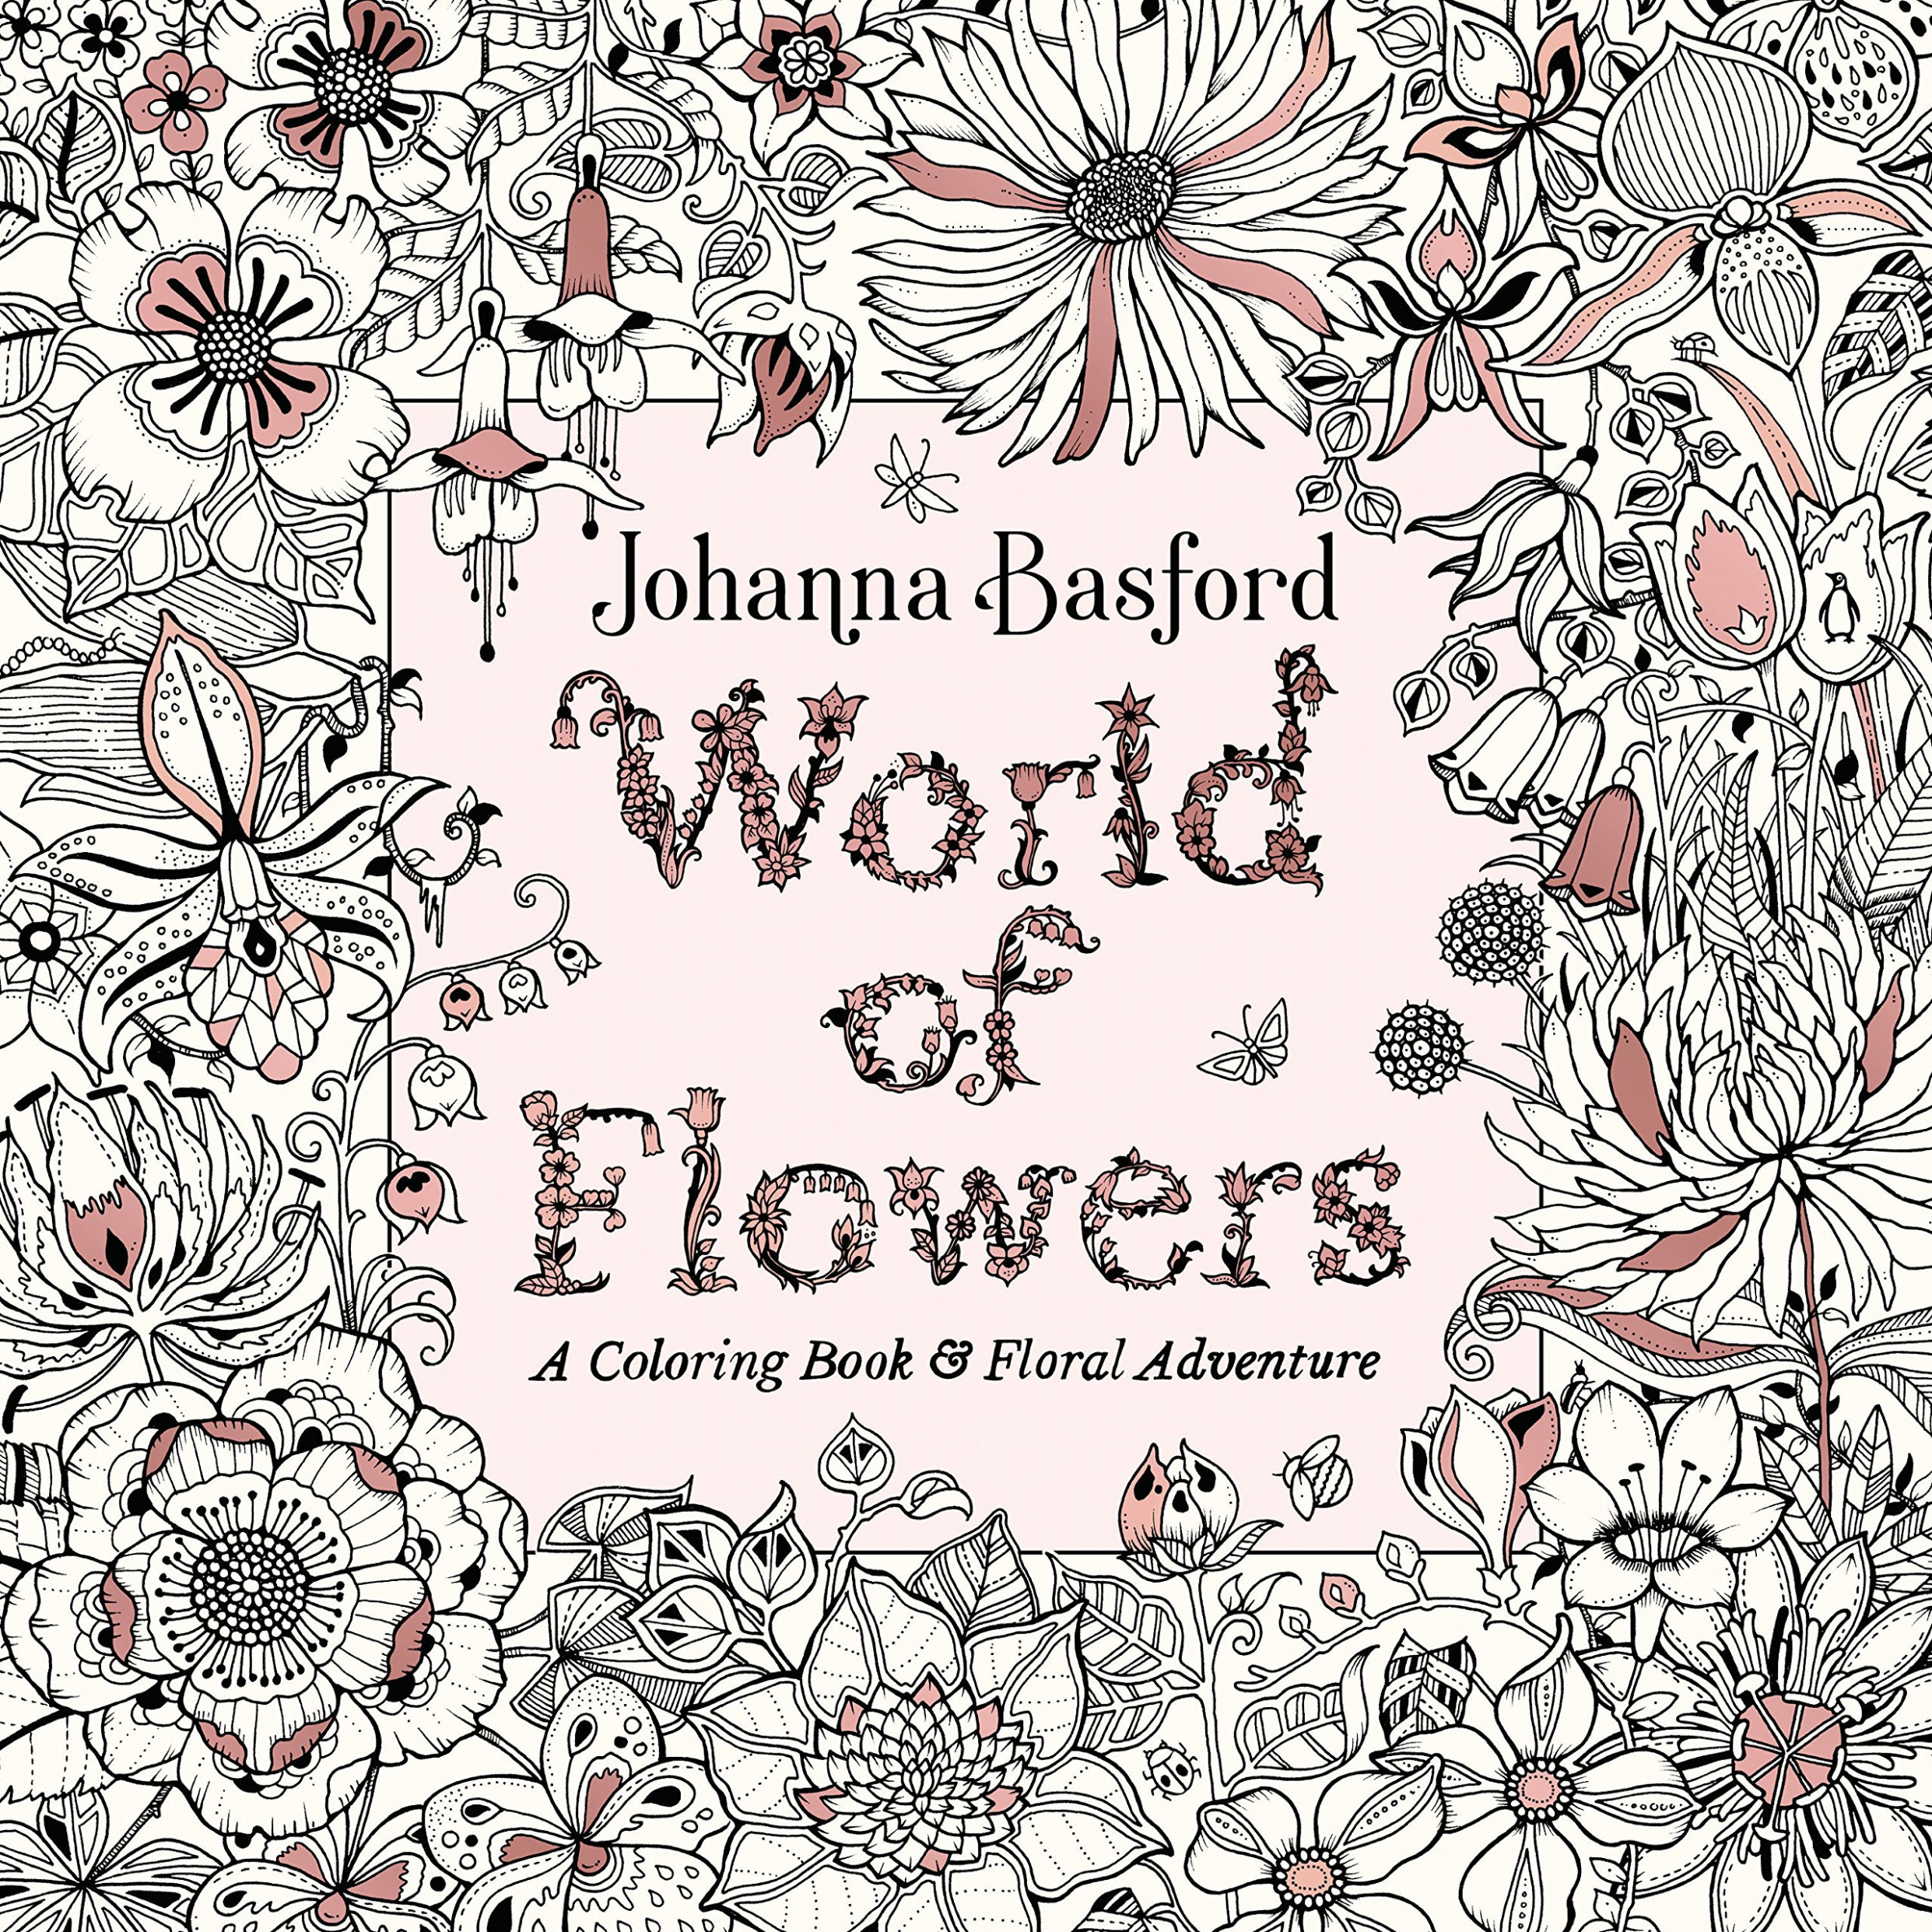 World of Flowers: A Coloring Book and Floral Adventure: Amazon.de ..